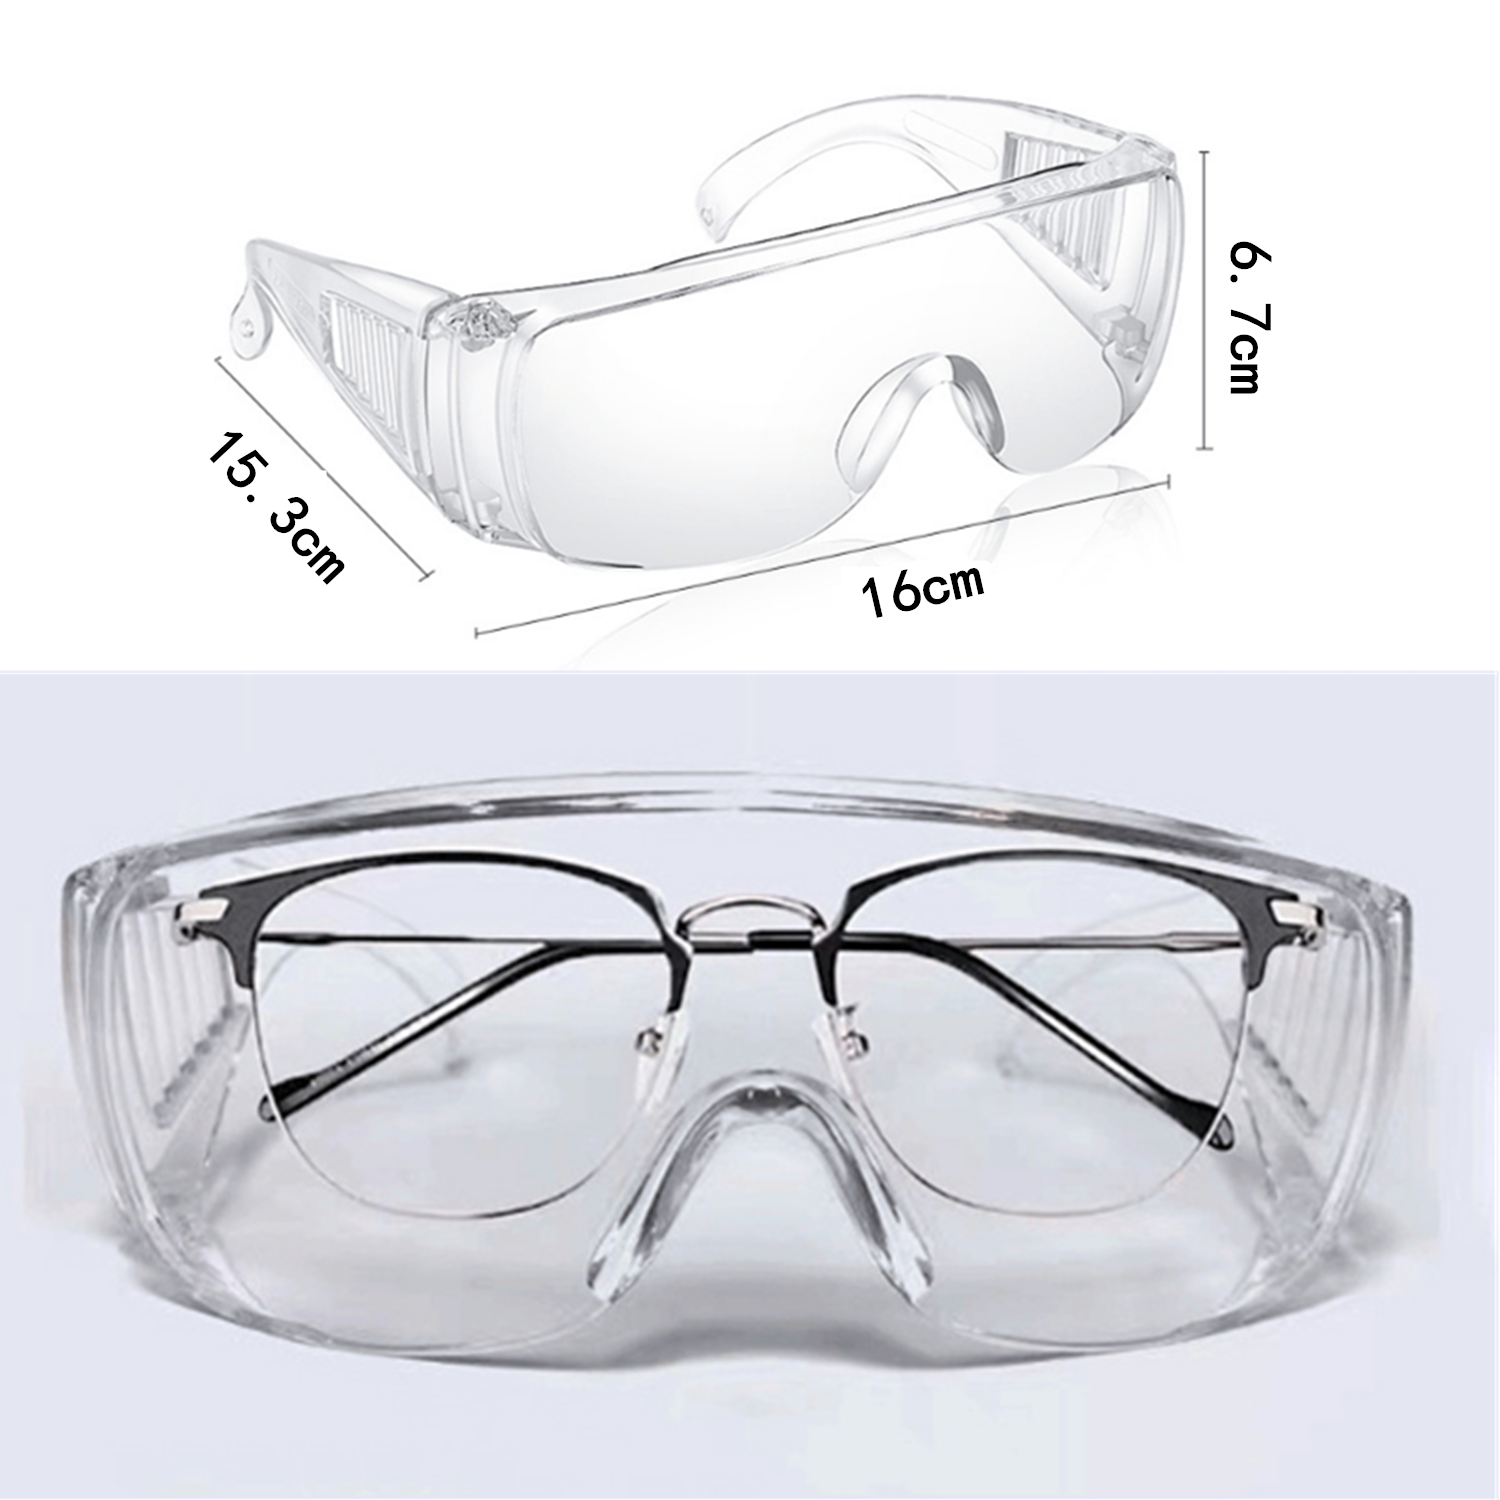 2pcs Safety Goggles Eye Protective Safety Riding Eyewear Vented Glasses Work Lab Sand Prevention Goggles Security Supplies New